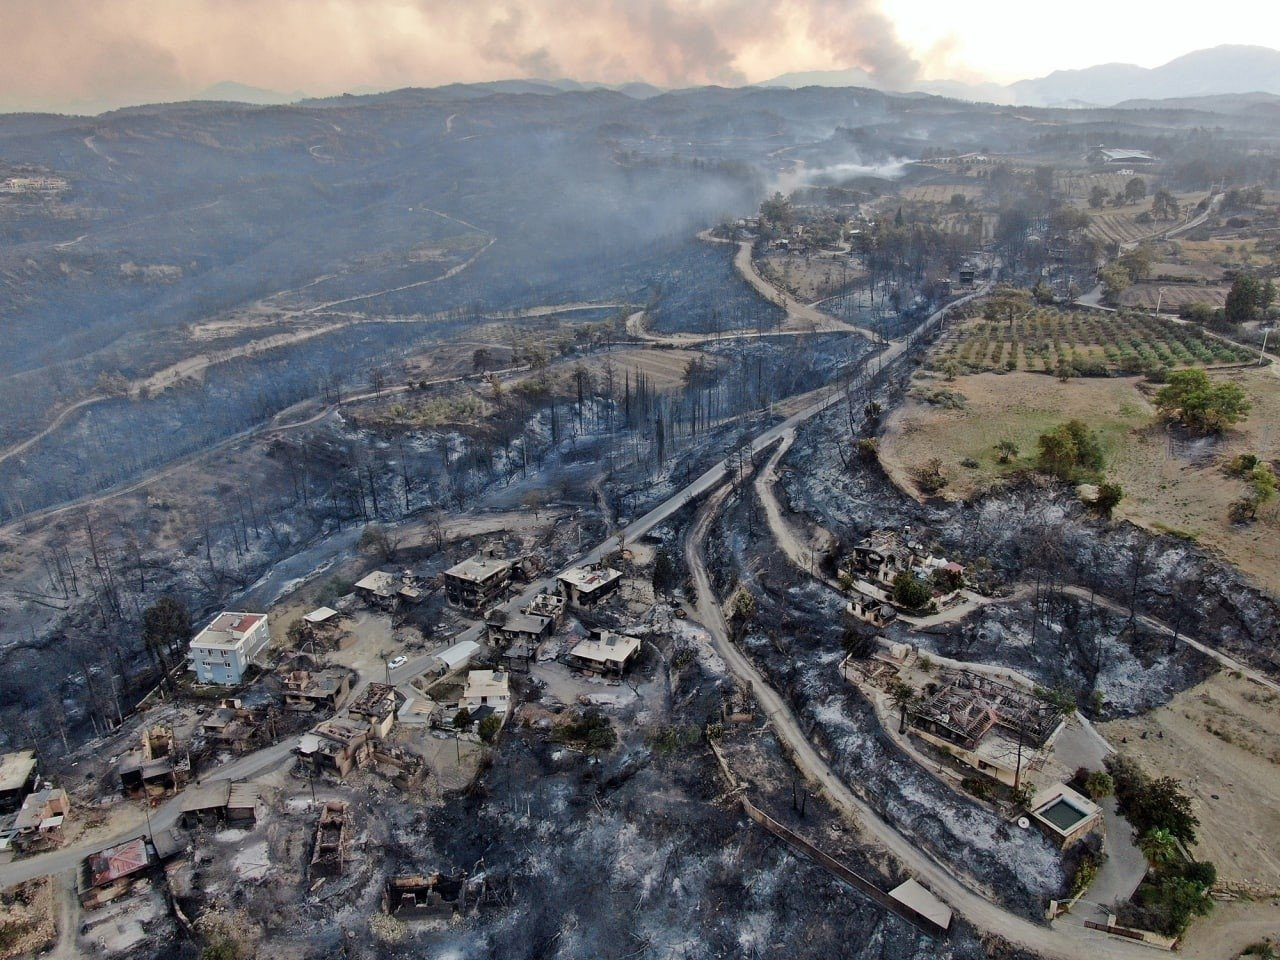 An aerial view of a residential area devastated by forest fire, in Manavgat district, in Antalya, southern Turkey, July 29, 2021. (İHA PHOTO)